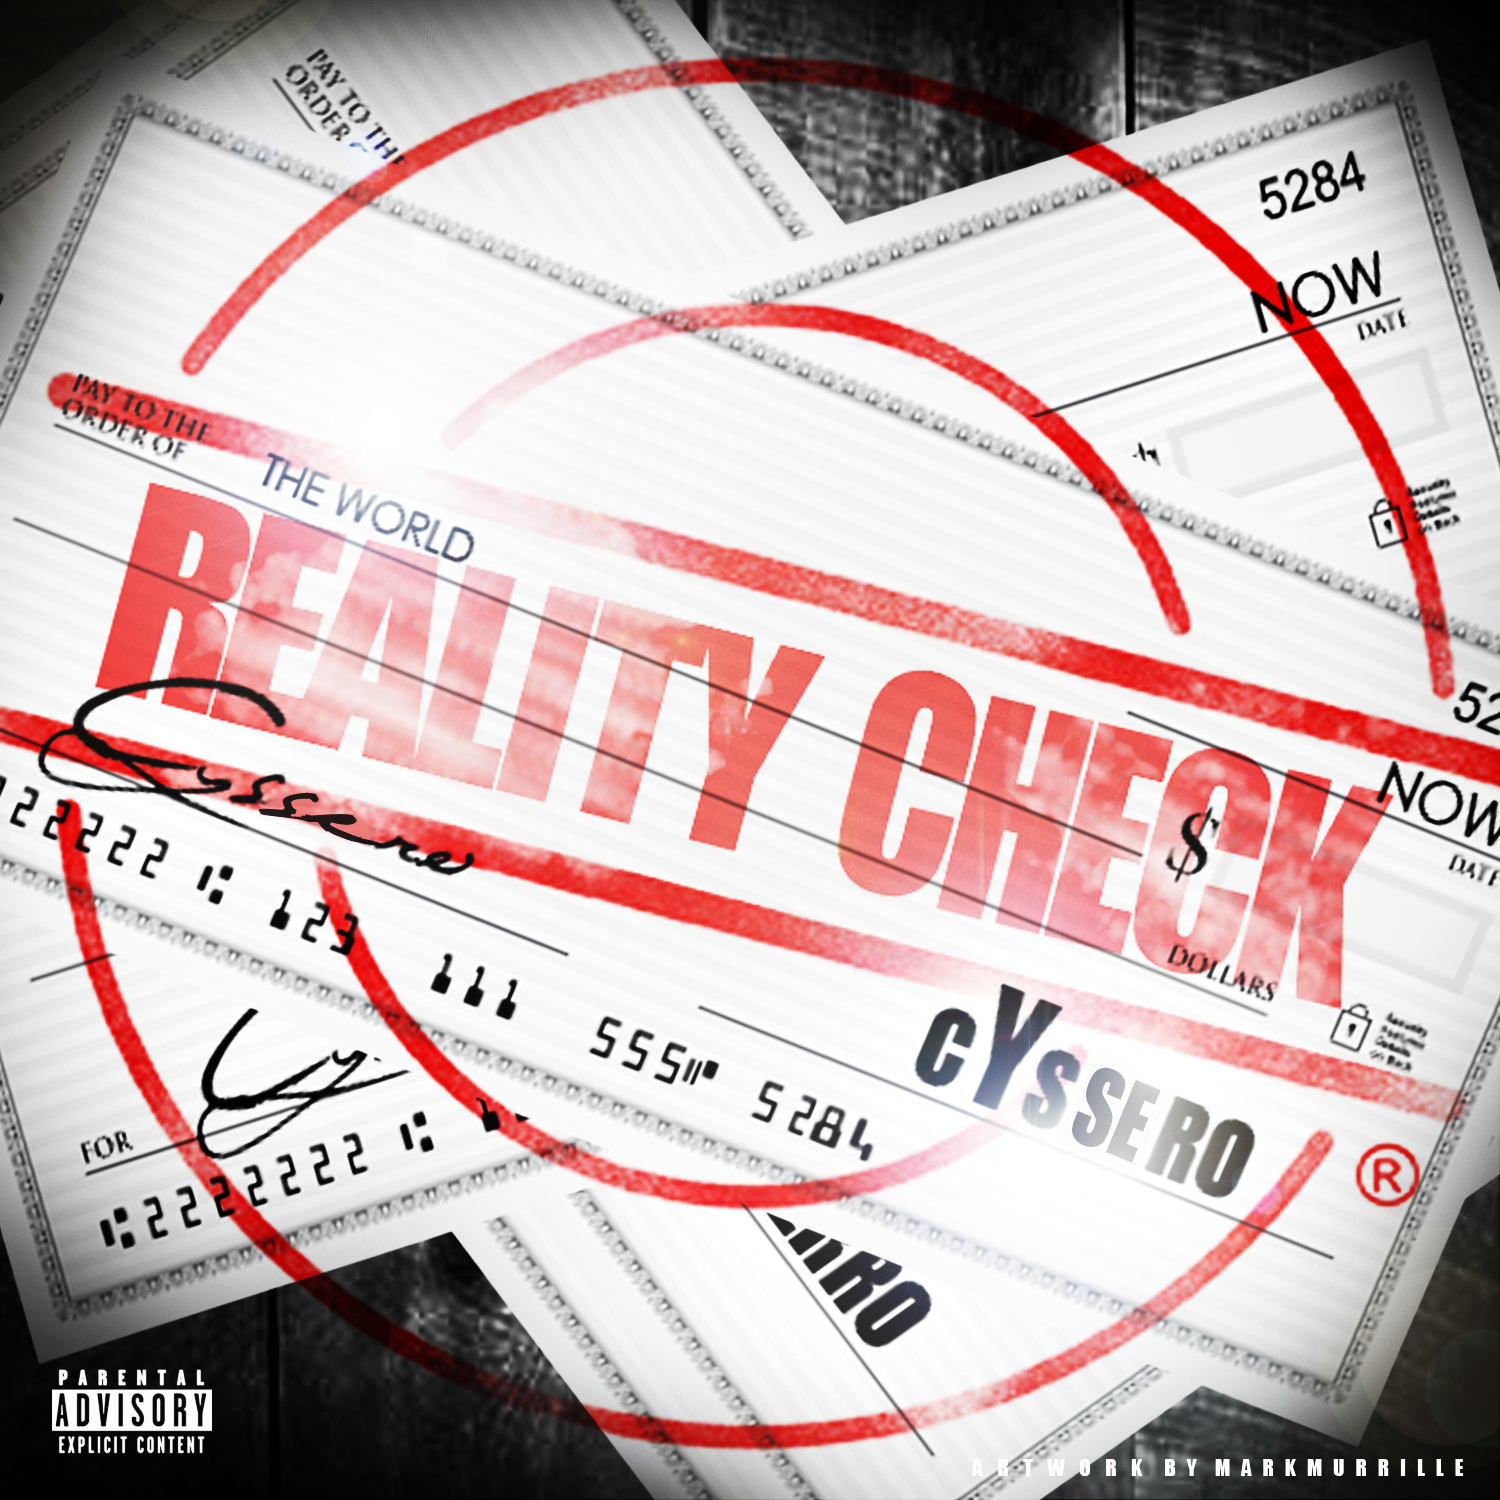 cyssero-reality-check-mixtape-HHS1987-2013-cover Cyssero - Reality Check (Mixtape)